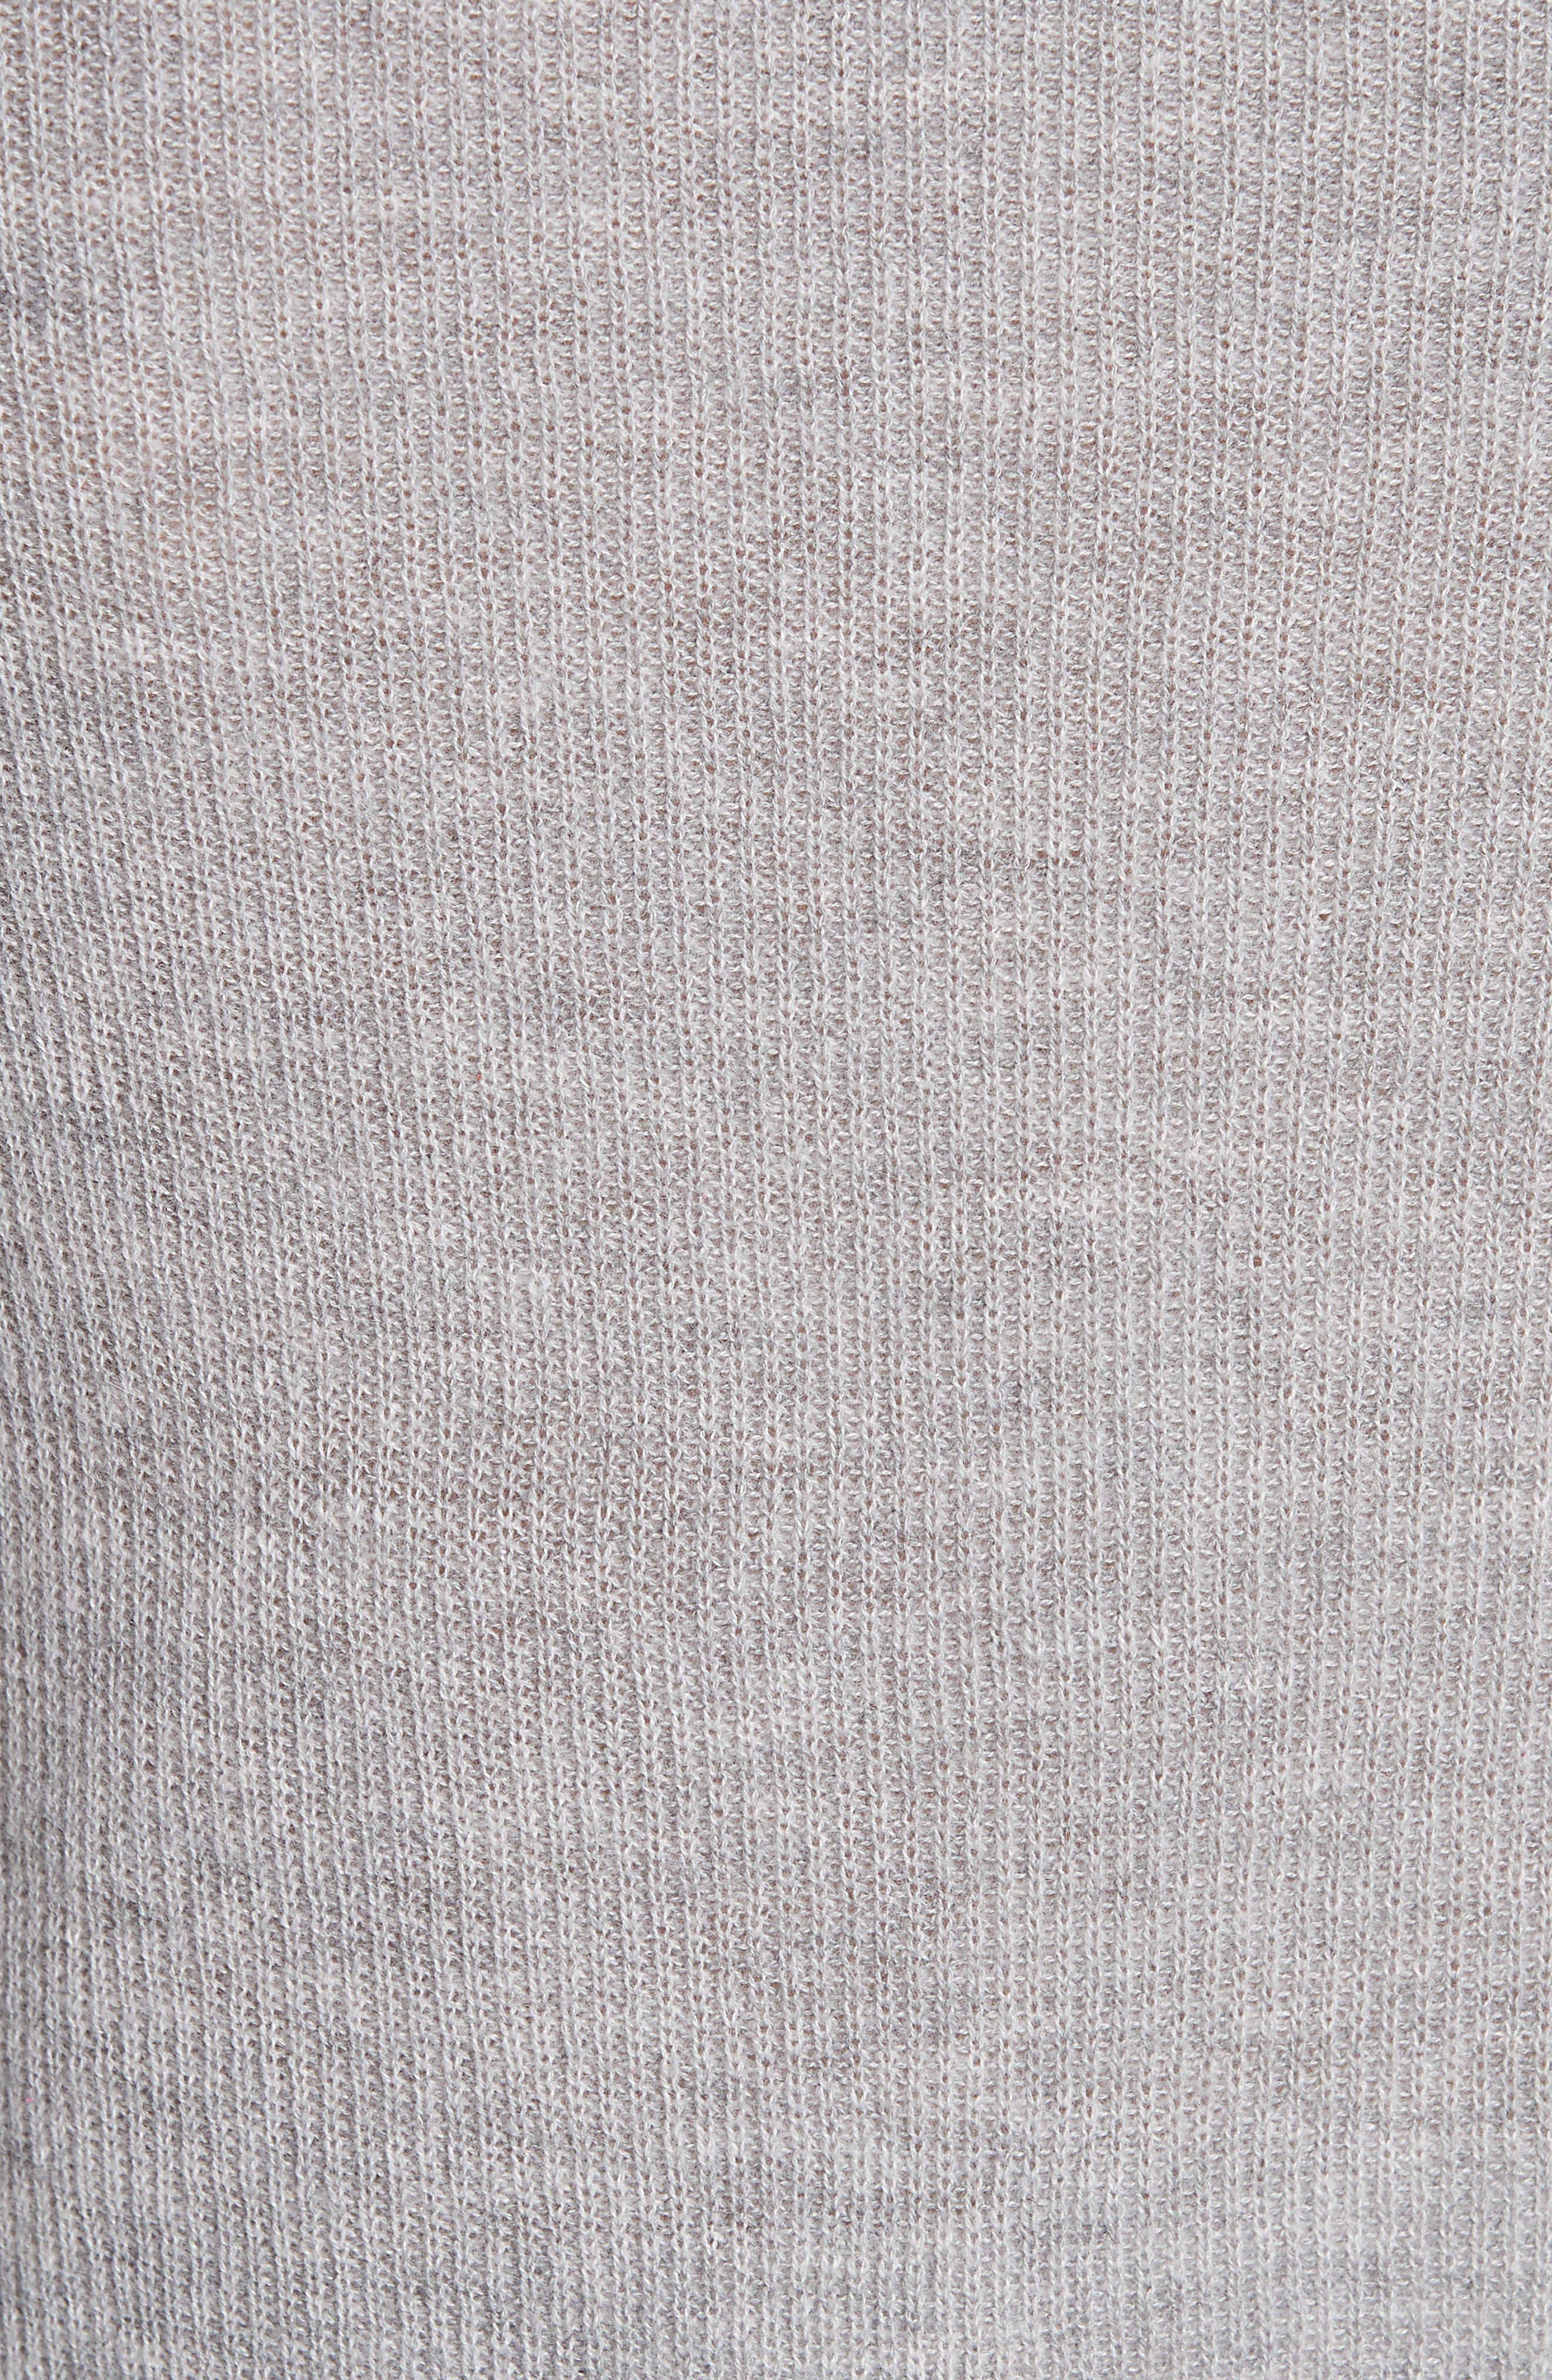 Ribbed Cashmere Sweater,                             Alternate thumbnail 5, color,                             060